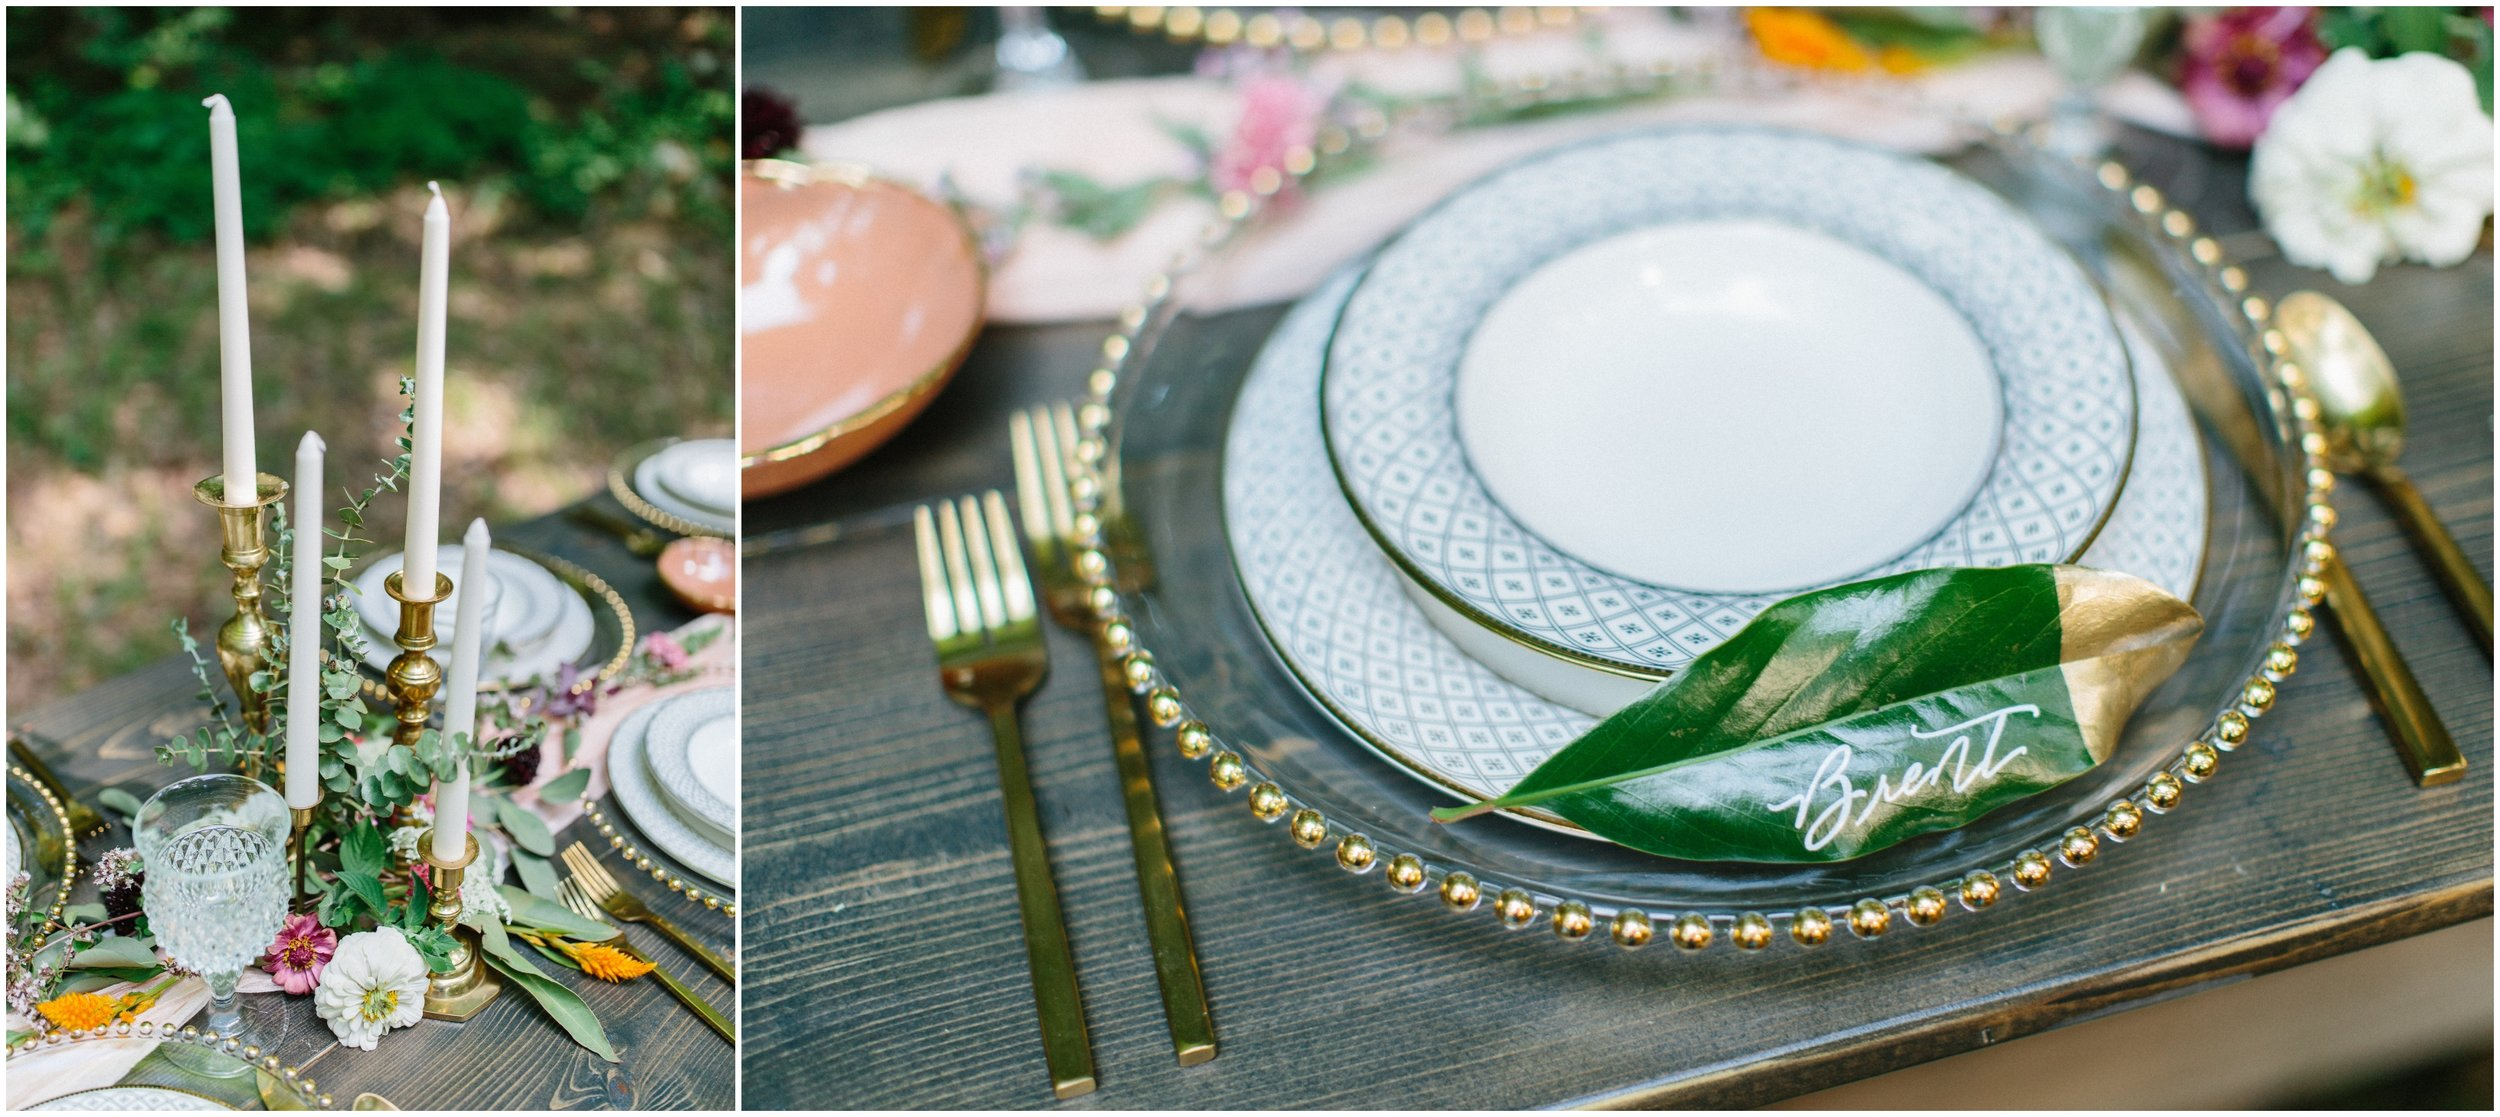 PHOTOGRAPHY -  HILLARY LEAH PHOTOGRAPHY , VENUE -  OAKLEAF COTTAGE , CHINA + FLATWARE -  CHATTANOOGA TENT , FLORALS -  CREEKSIDE FLOWER FARM , CALLIGRAPHY -  LAURA LINES CALLIGRAPHY , VINTAGE RENTALS + DESIGN -  THE COPPER QUAIL